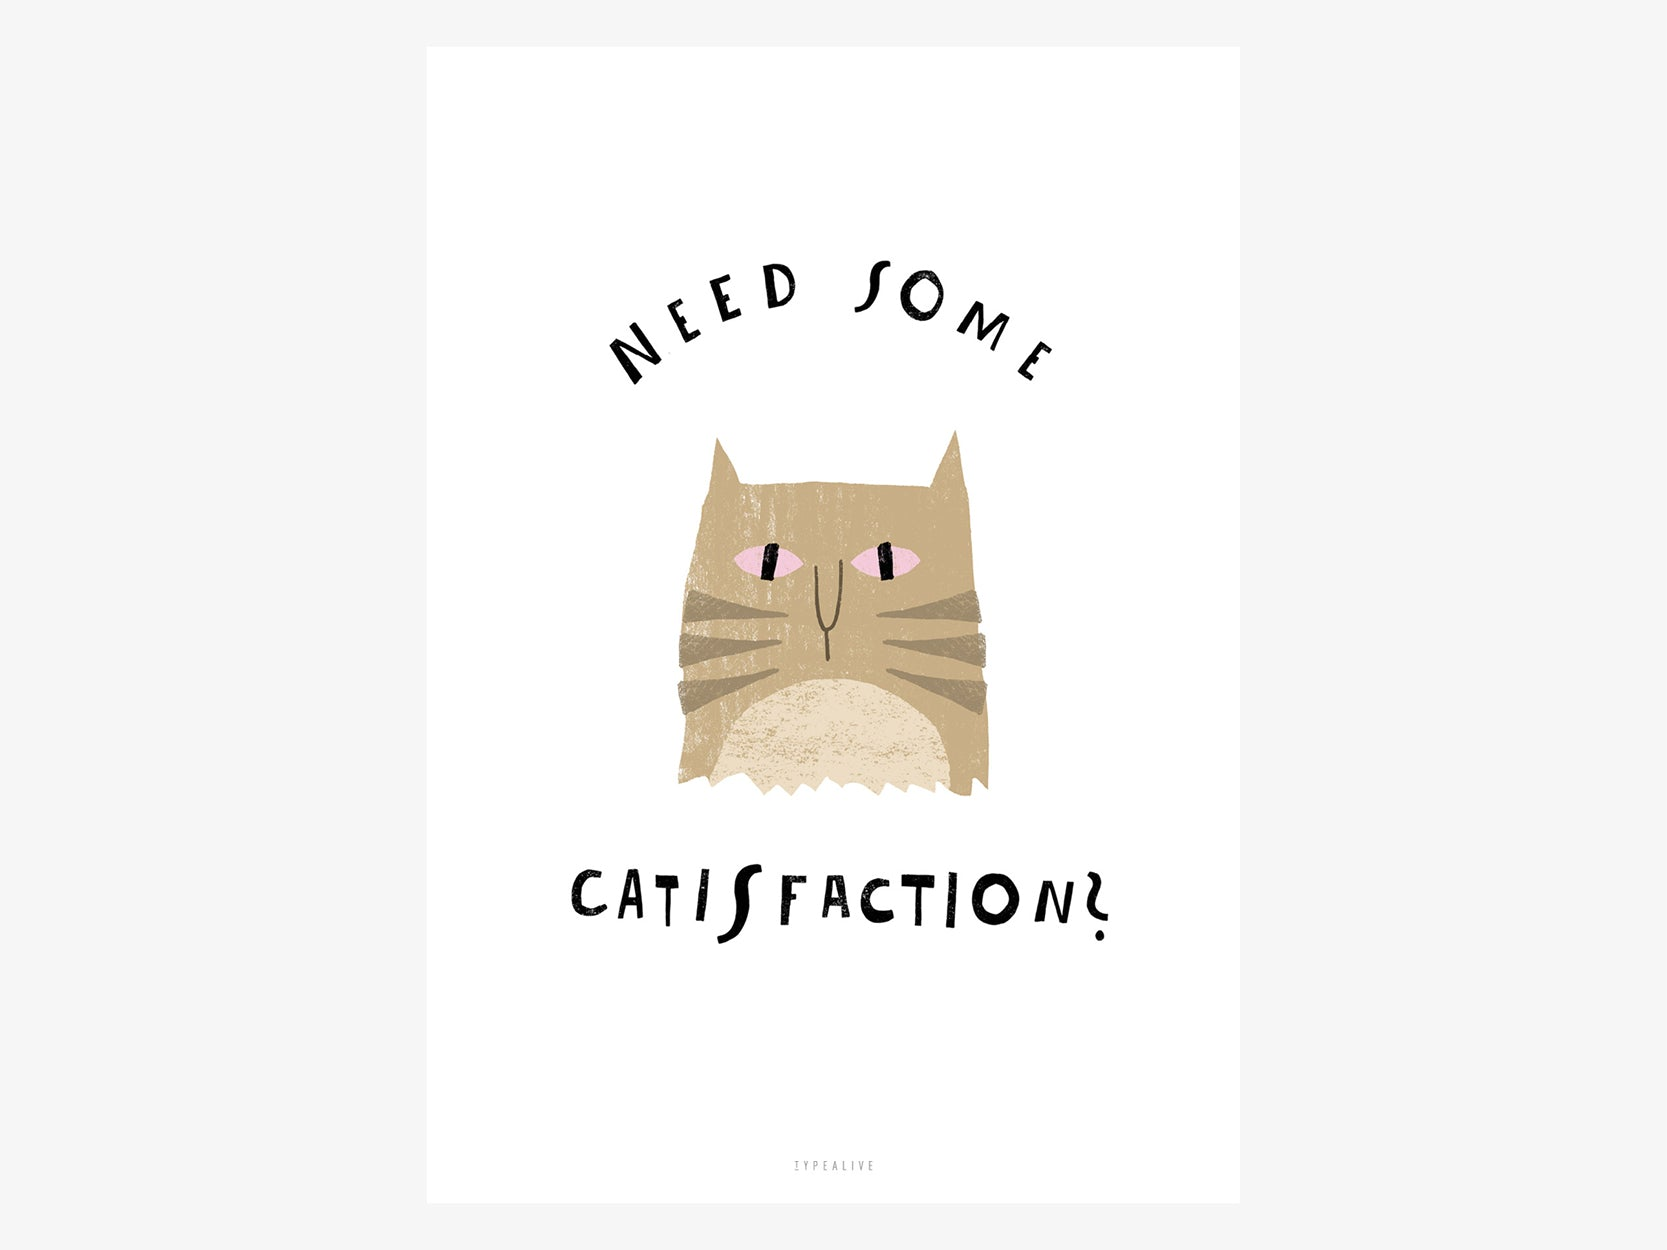 Print / Catisfaction No. 8